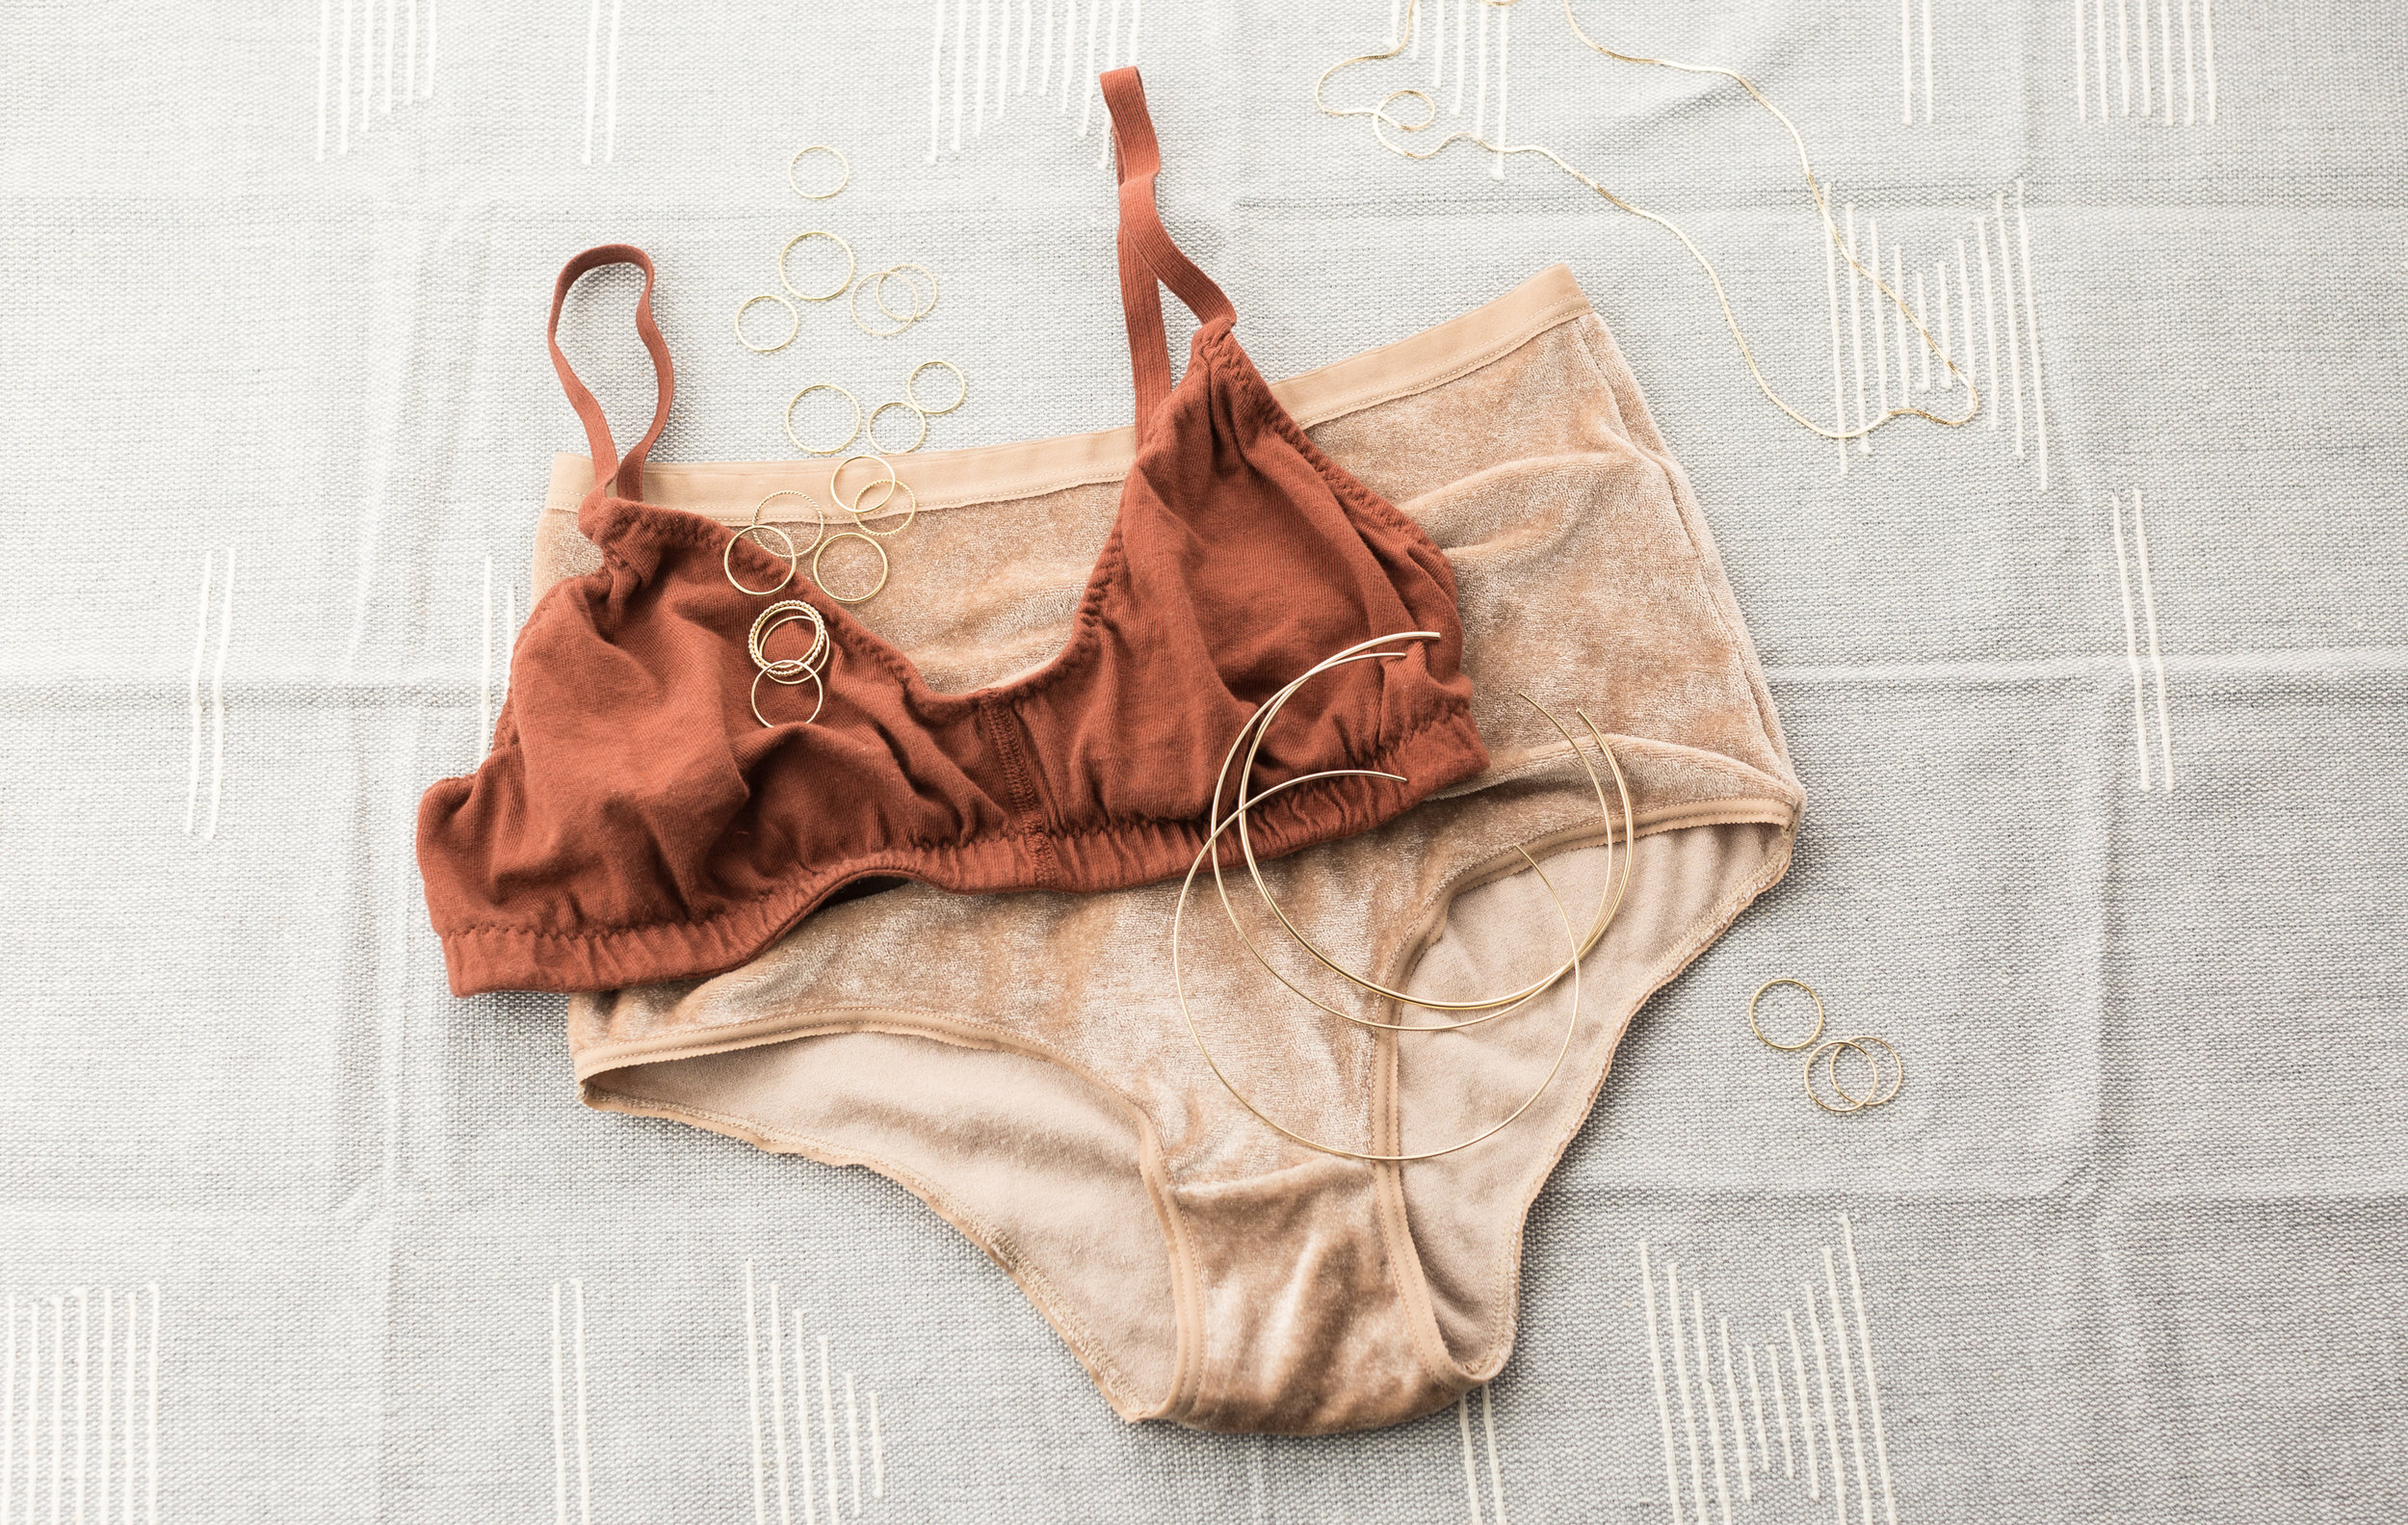 UNDIES:  Pansy Bra , Baserange  Velour Panties .  GLDN JEWELRY:  Adria  and  Aire  Stacking Rings,  Aura  and  Hala  Neck Rings, Long Chain by special request